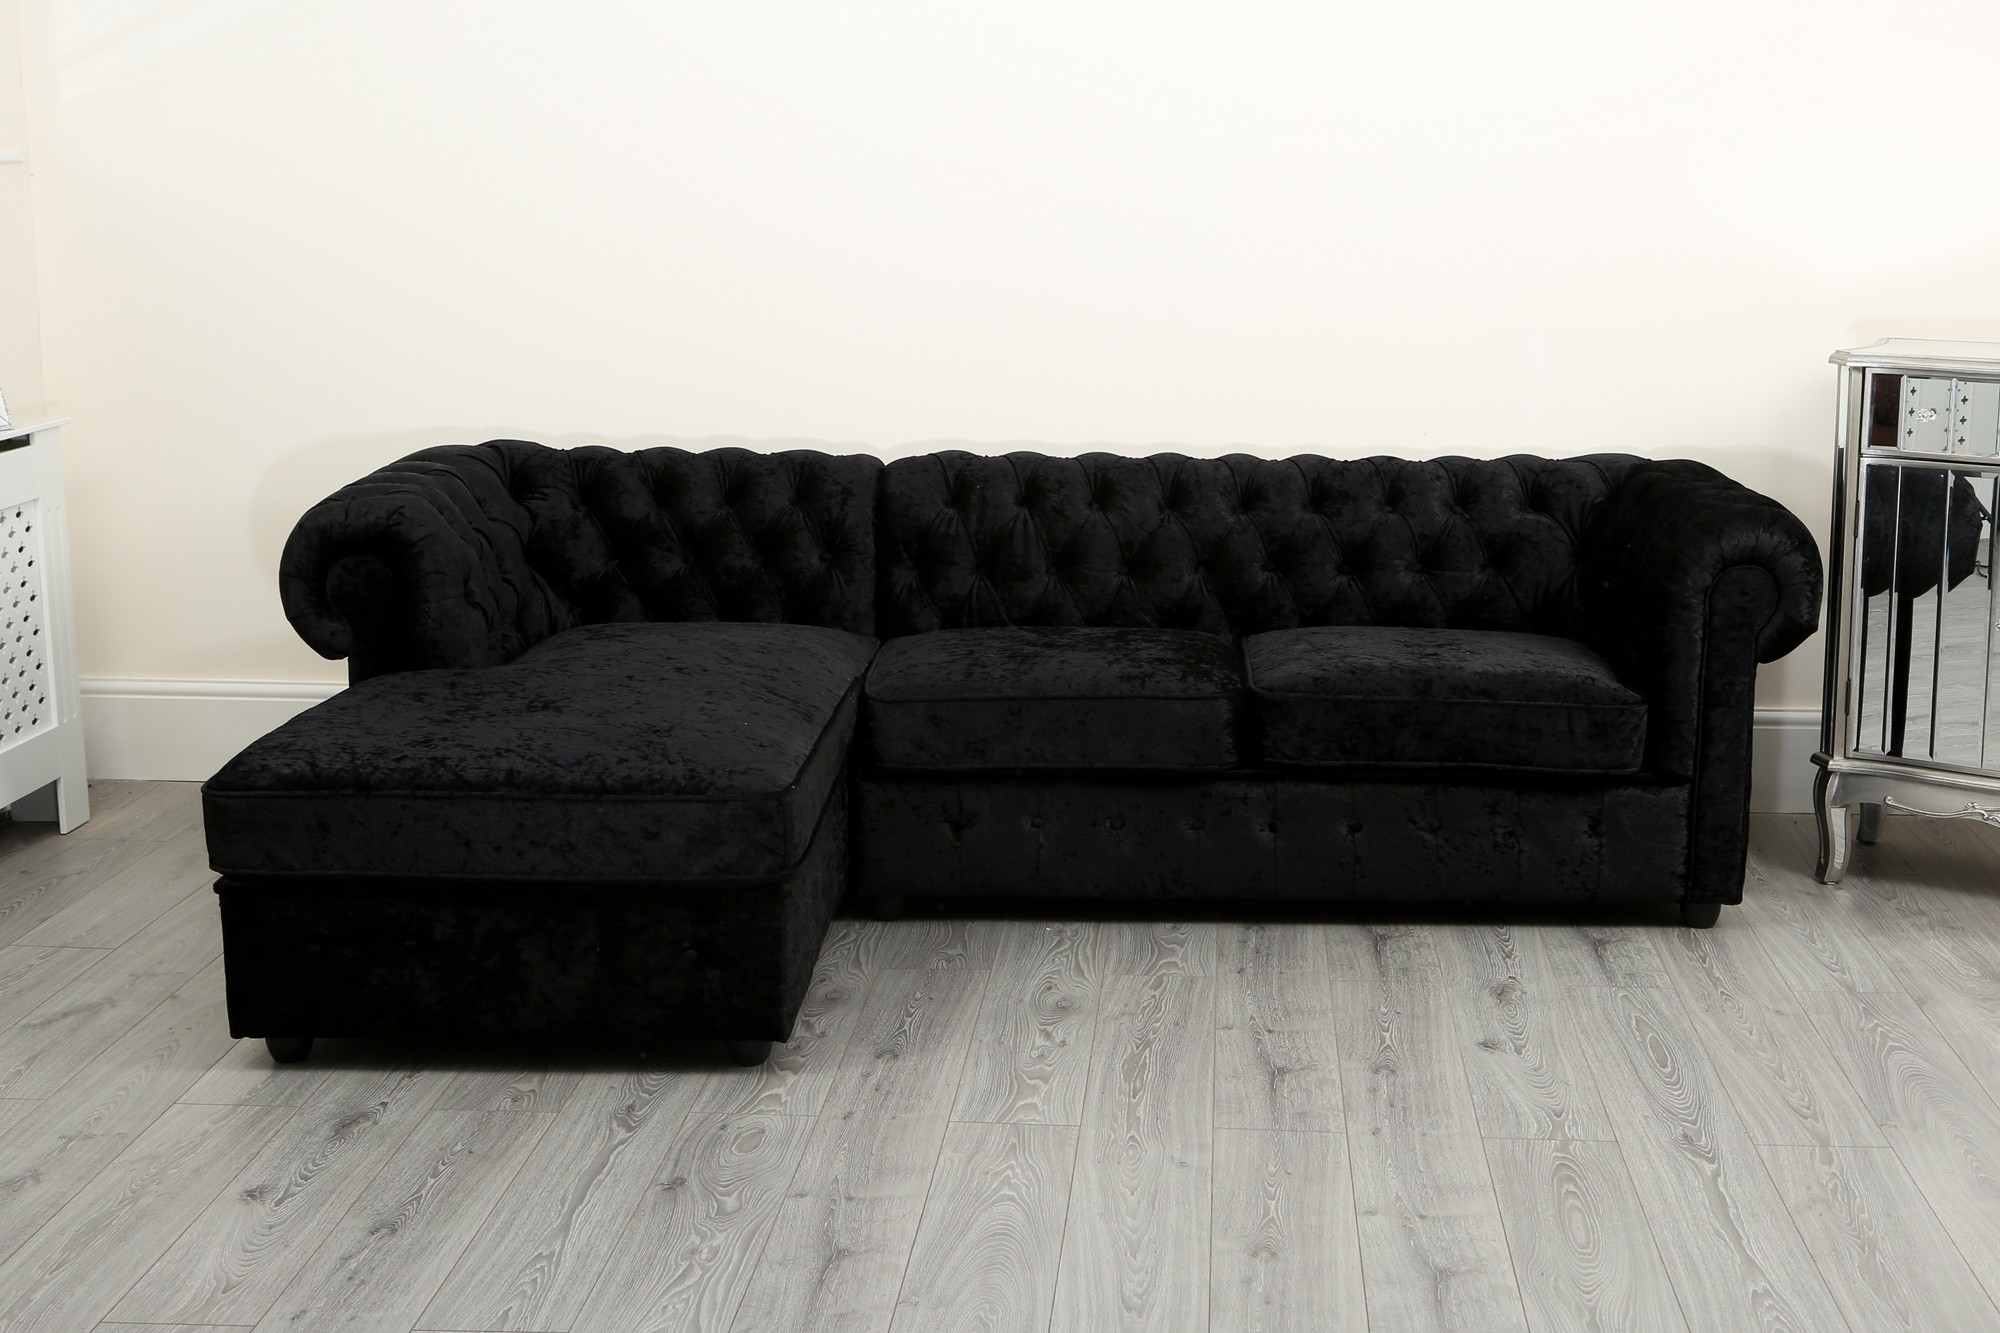 Empire Chesterfield Corner Sofa In Black Crushed Velvet